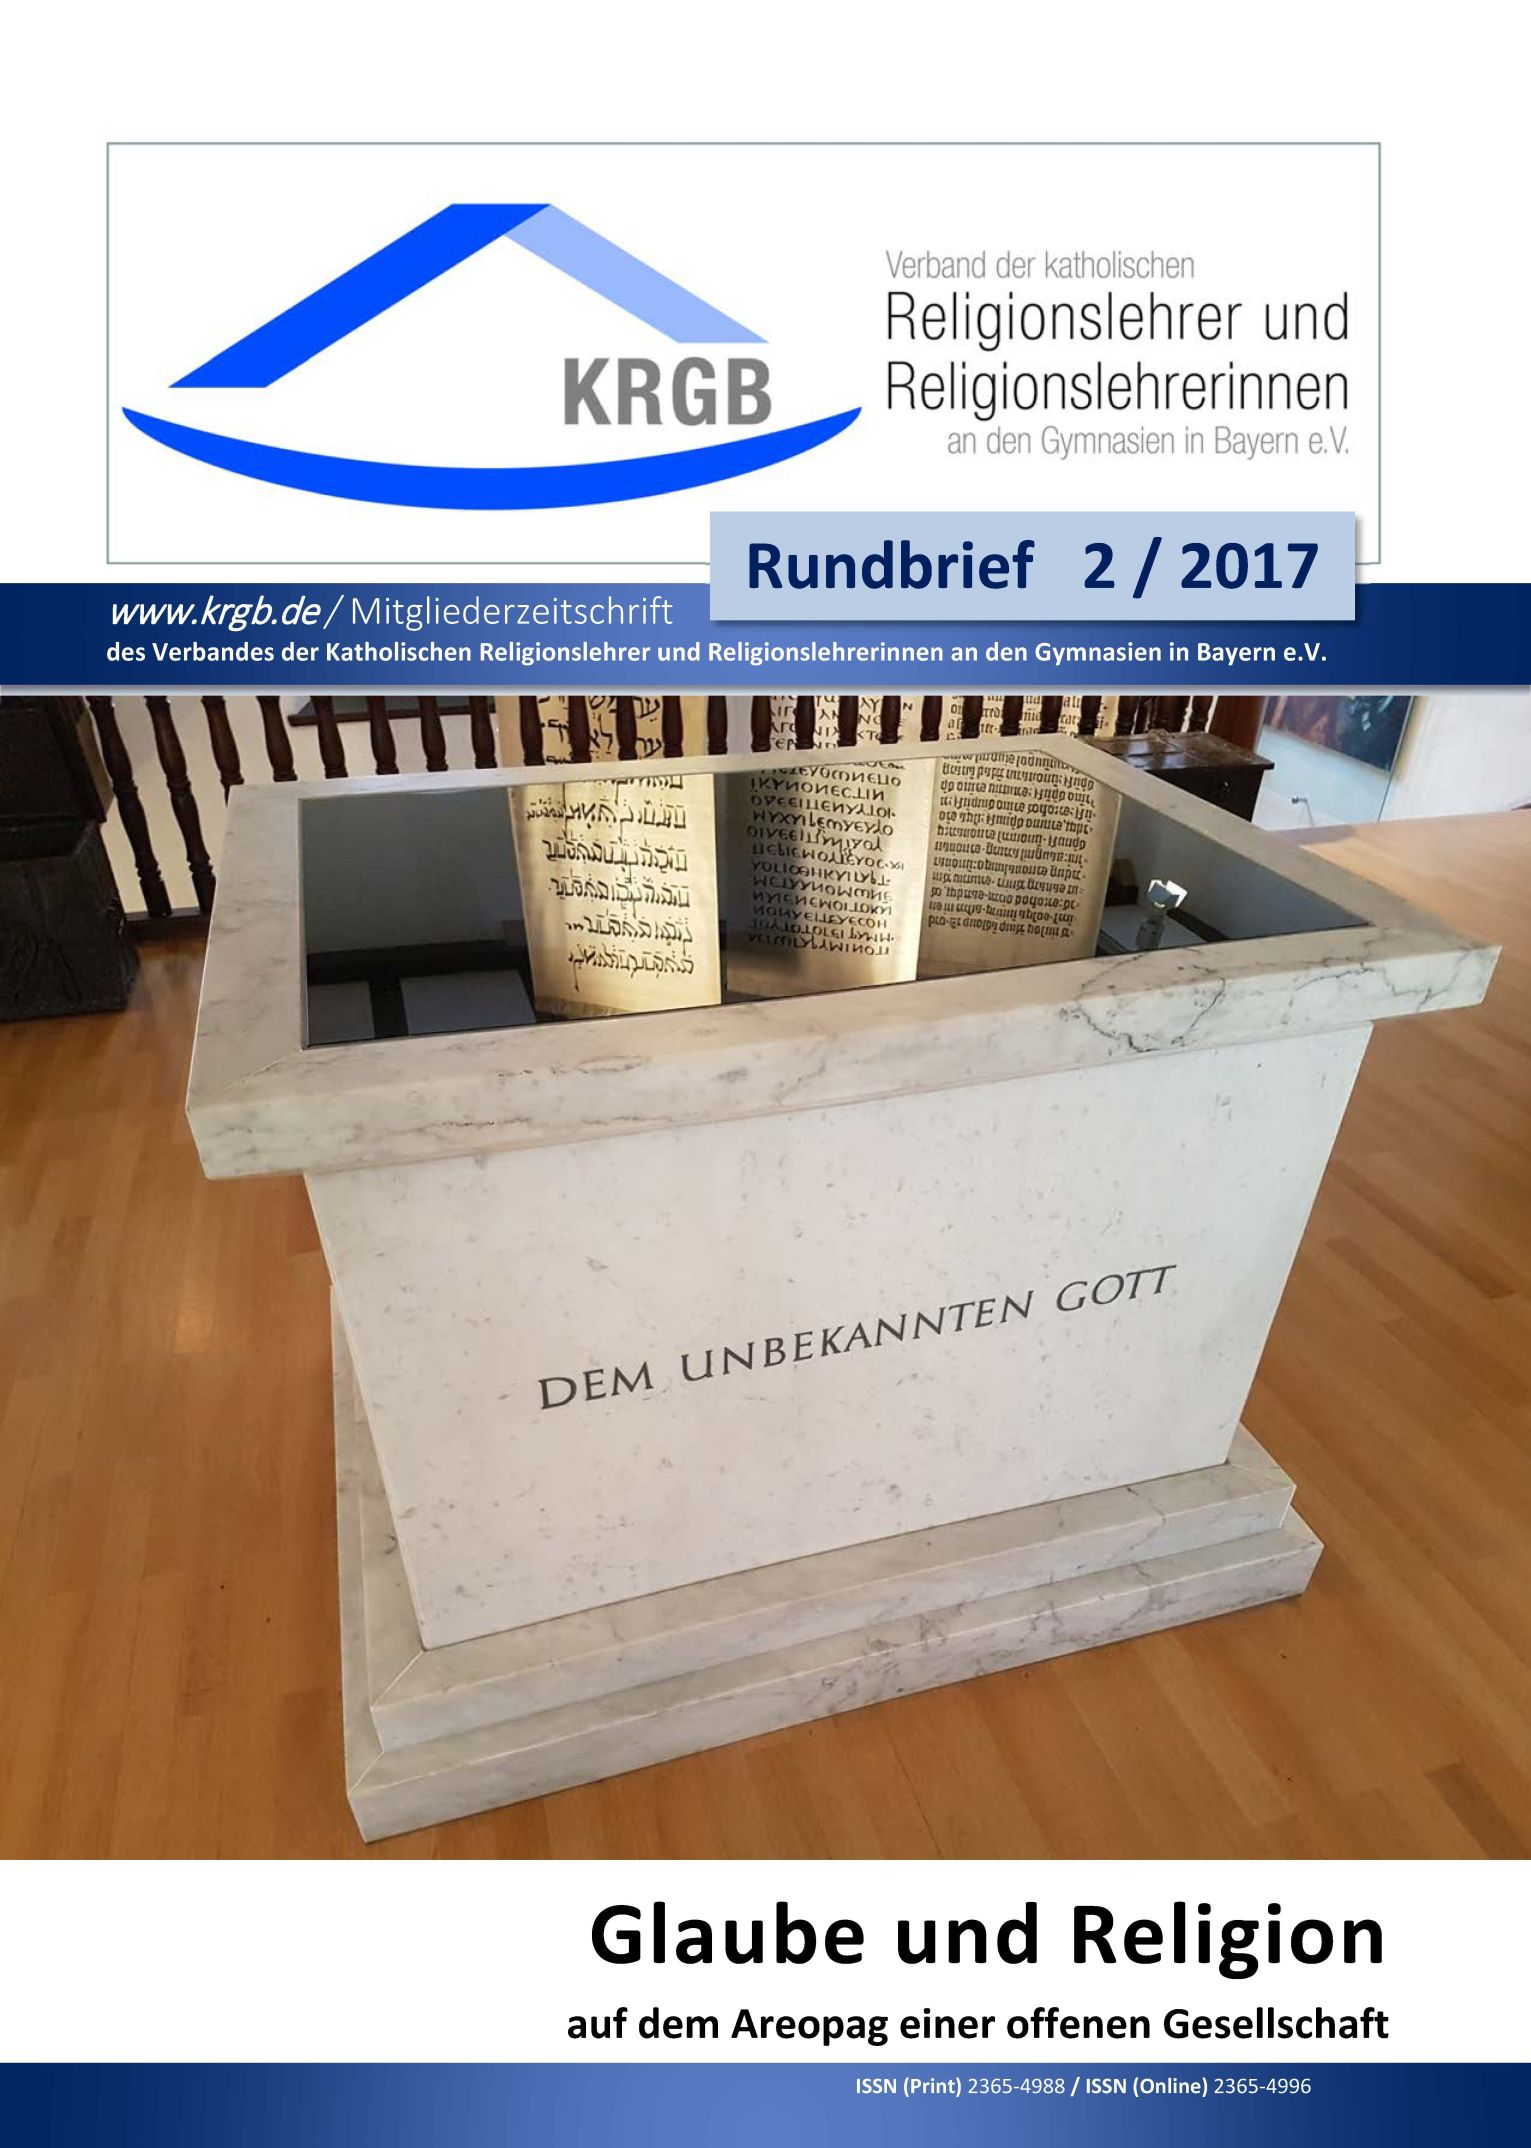 Titelbild KRGB RB 2017 2 digital